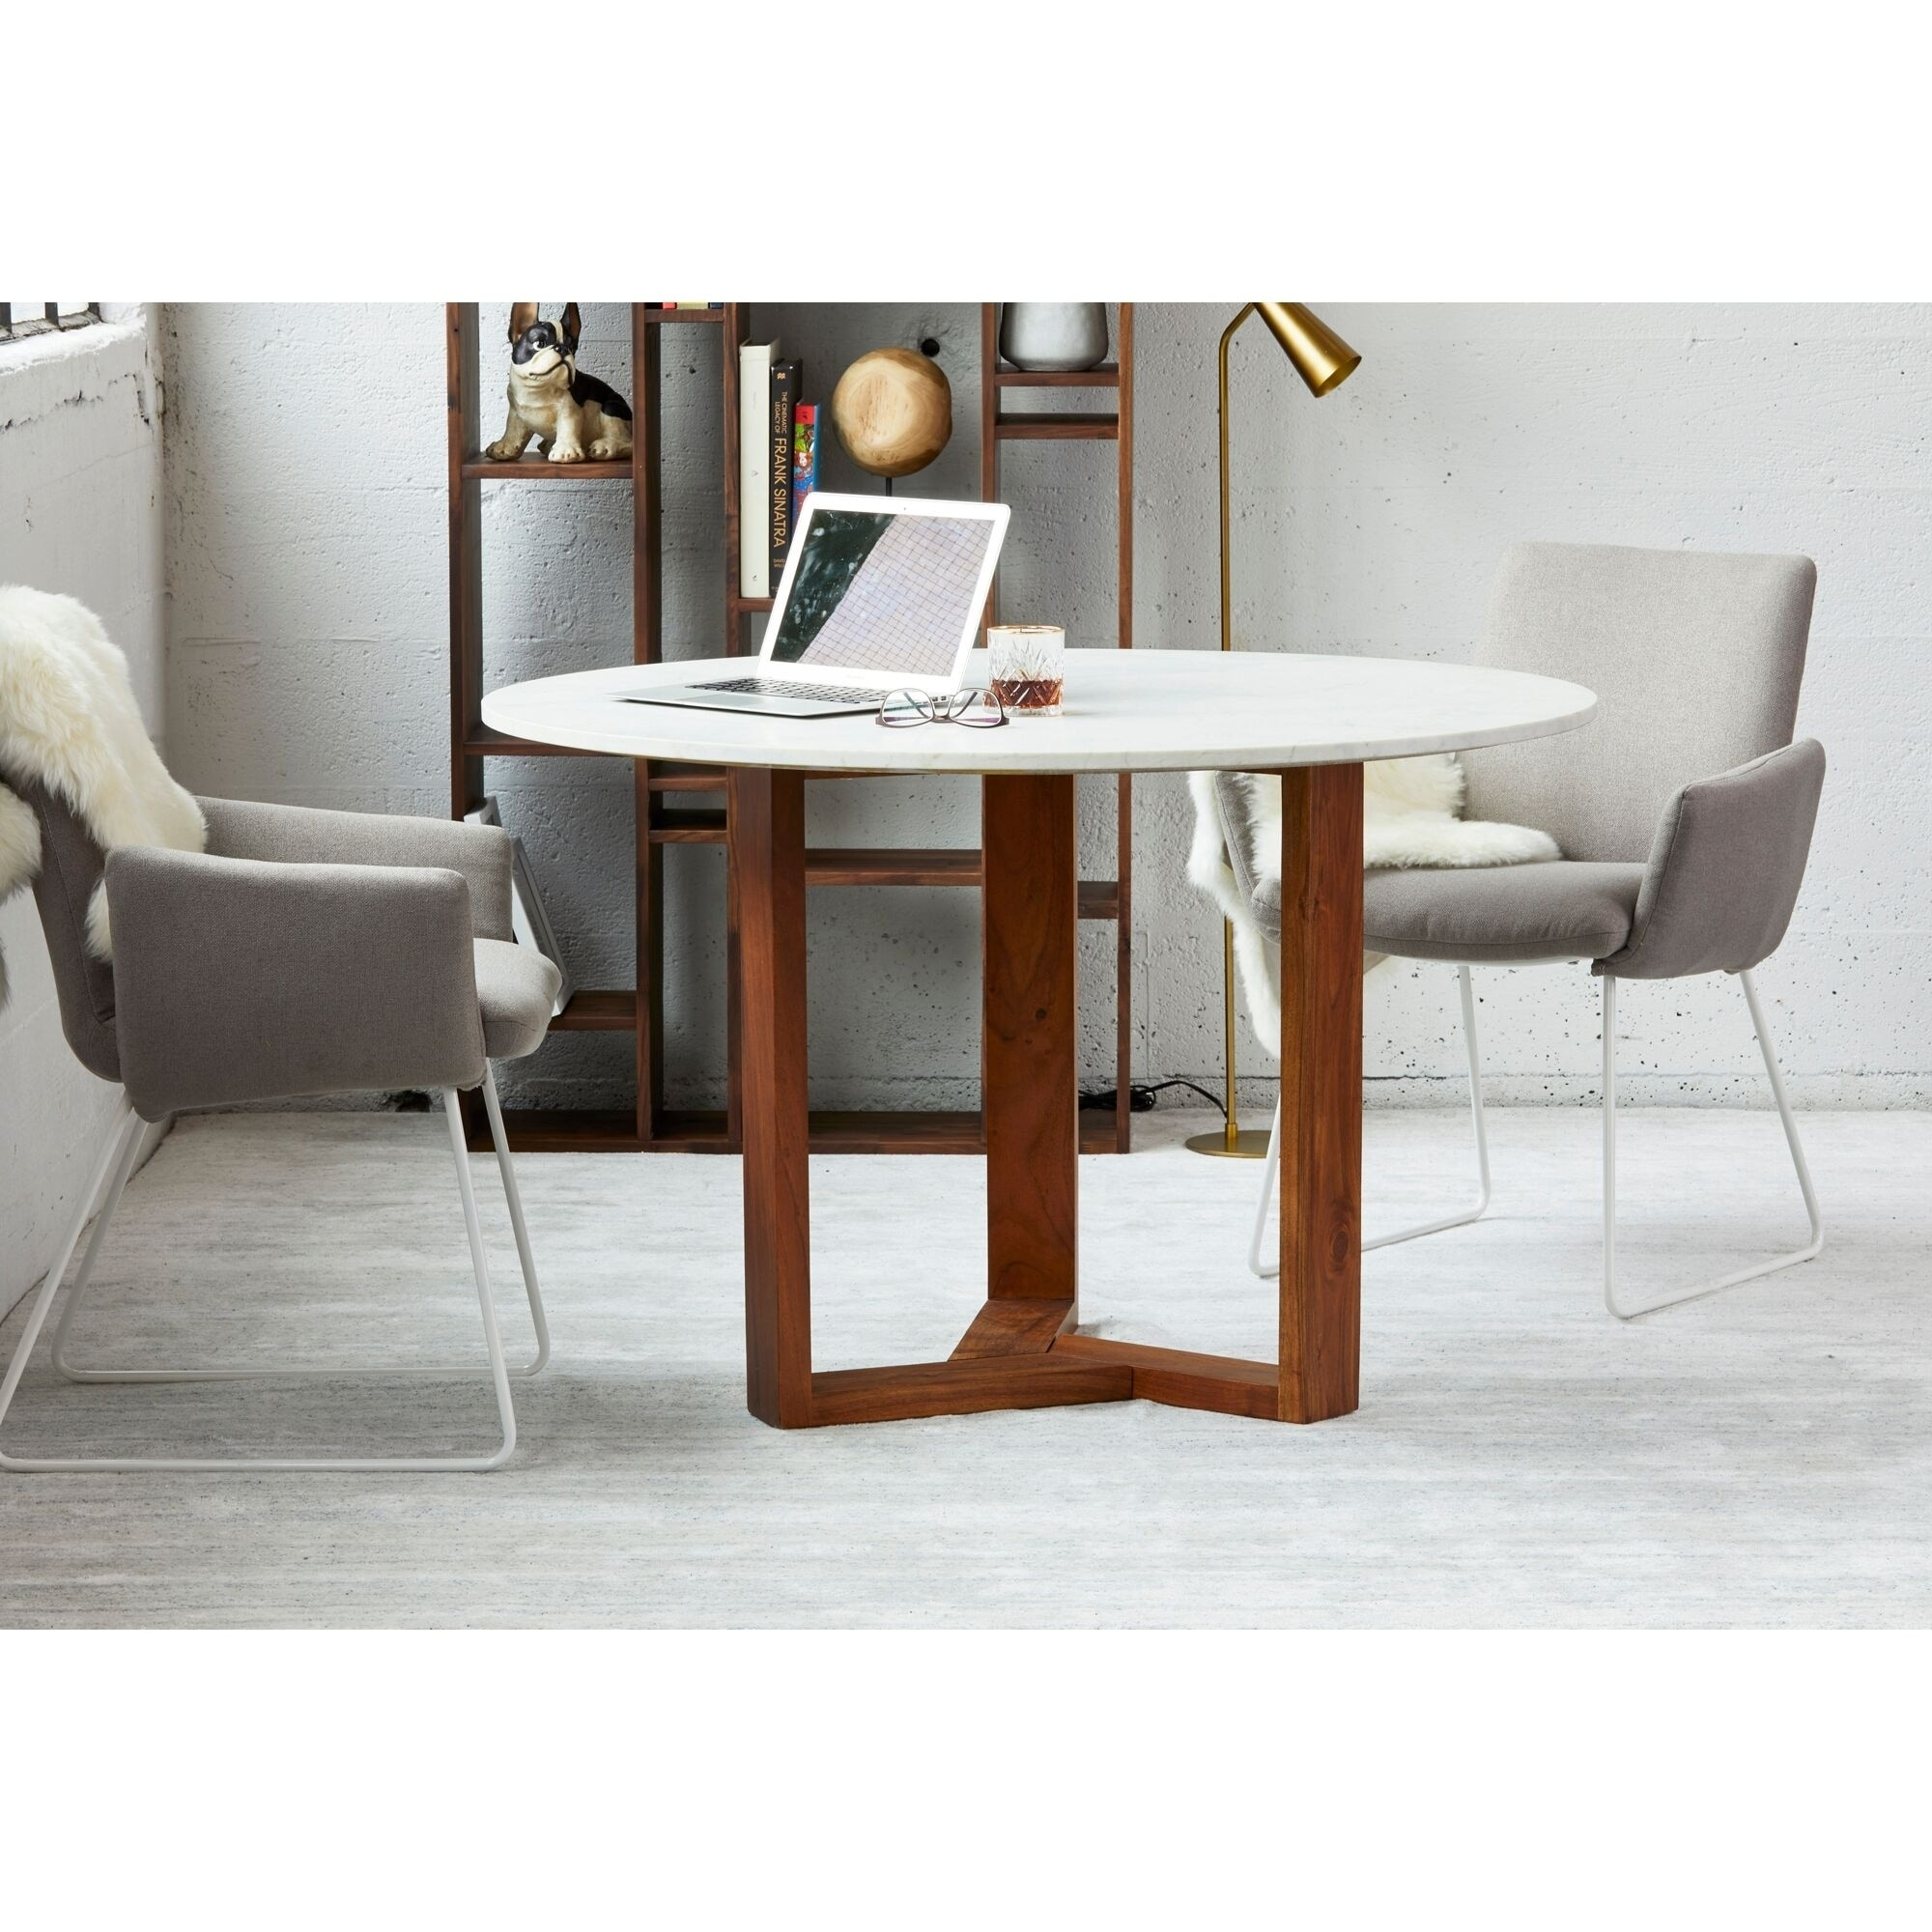 Aurelle Home Italian Marble Round Dining Table White On Sale Overstock 26041275